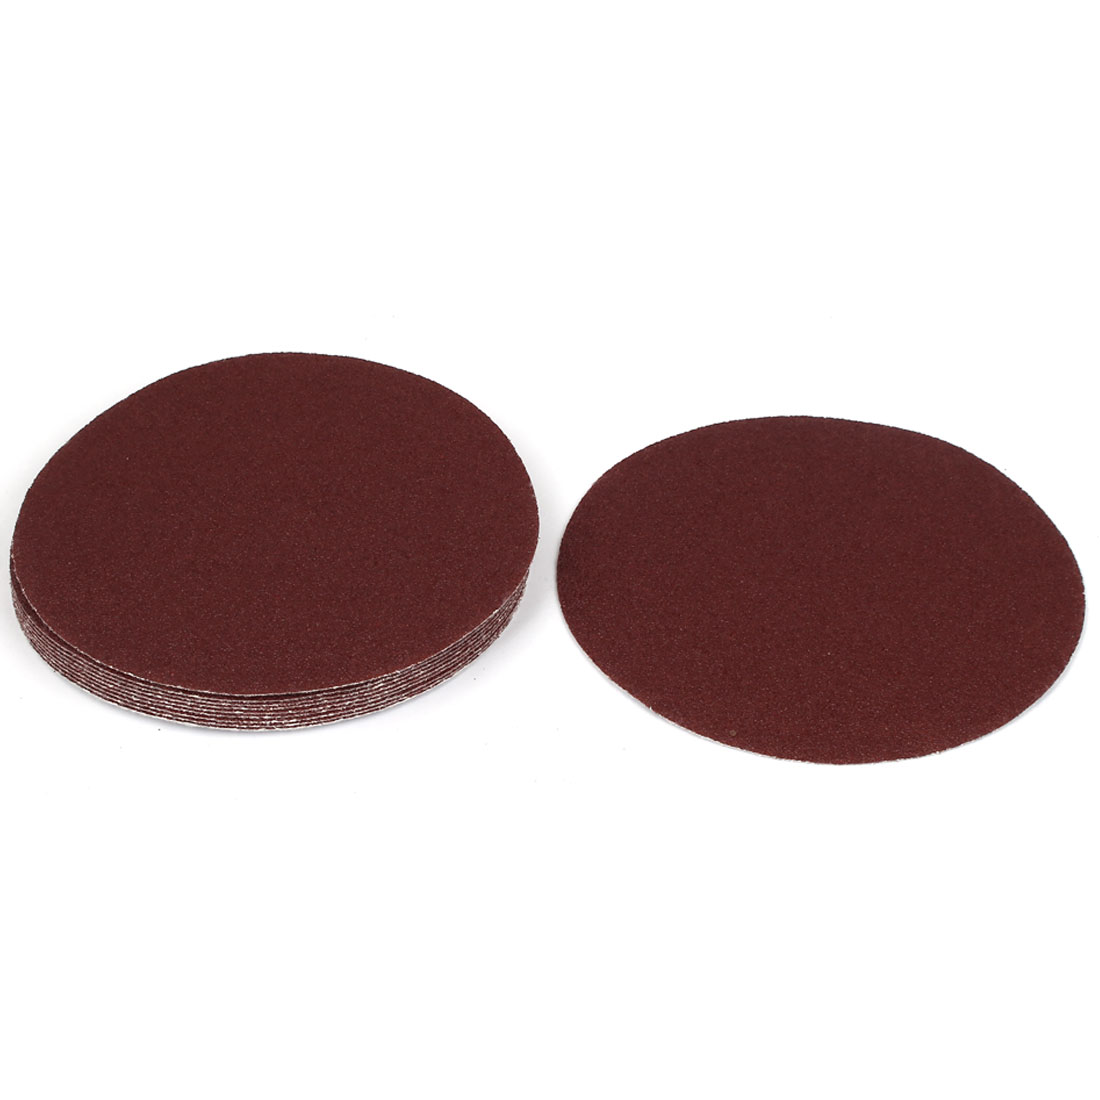 "6"" Dia Polishing Round Abrasive Sanding Sandpaper Sheet Disc 60 Grit 10 Pcs"